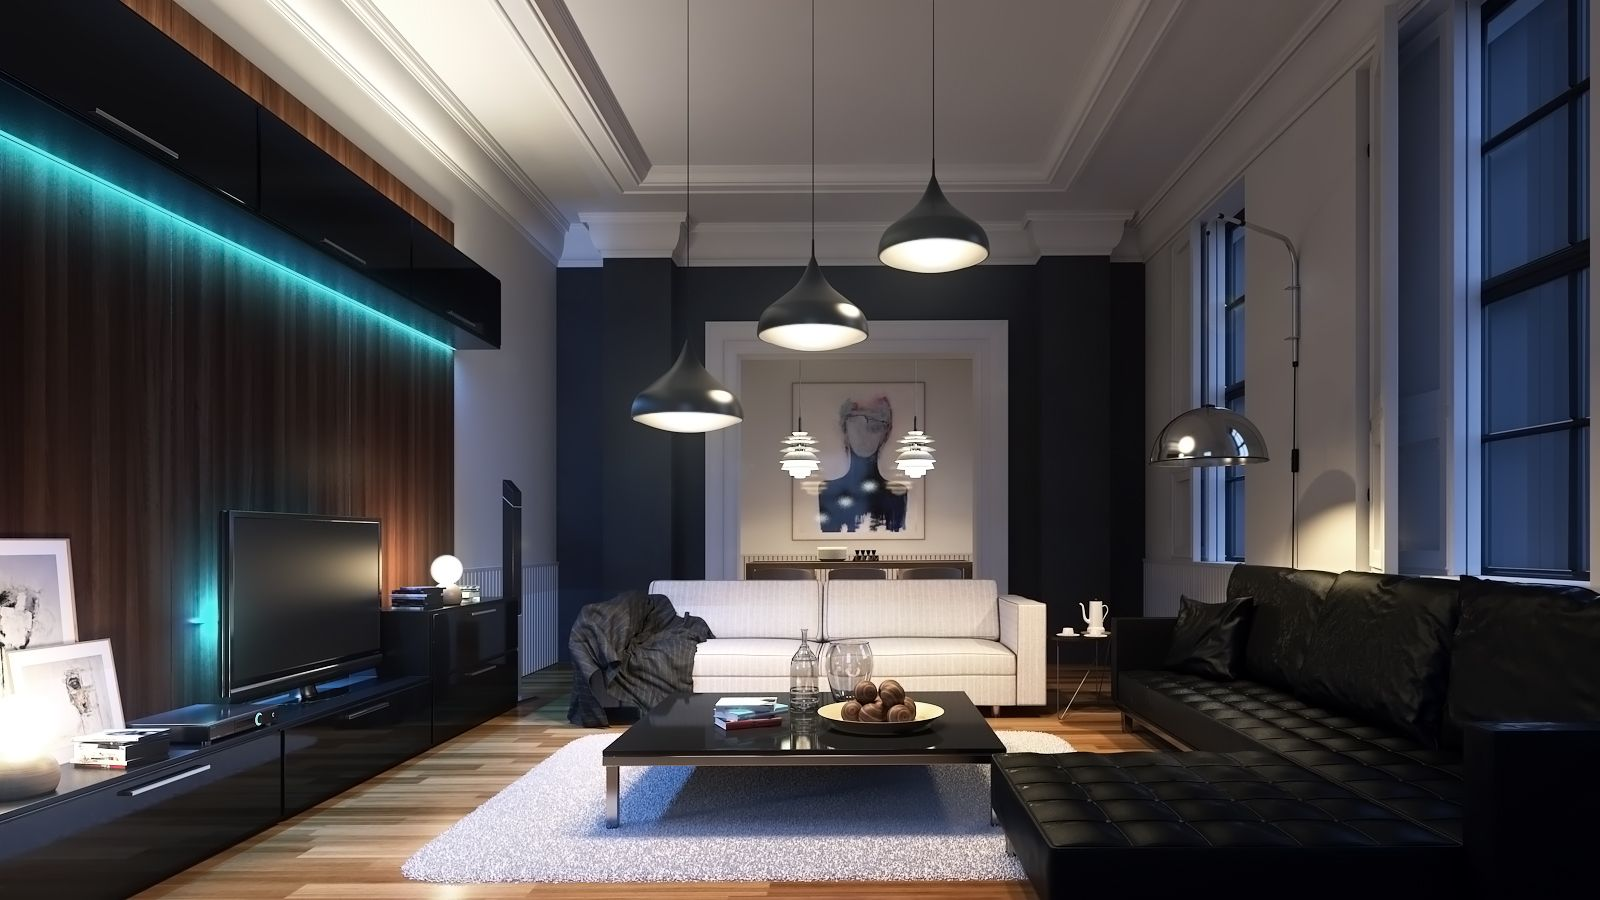 Vray 3ds max night interior making of part 1 vray for Decoration 3ds max